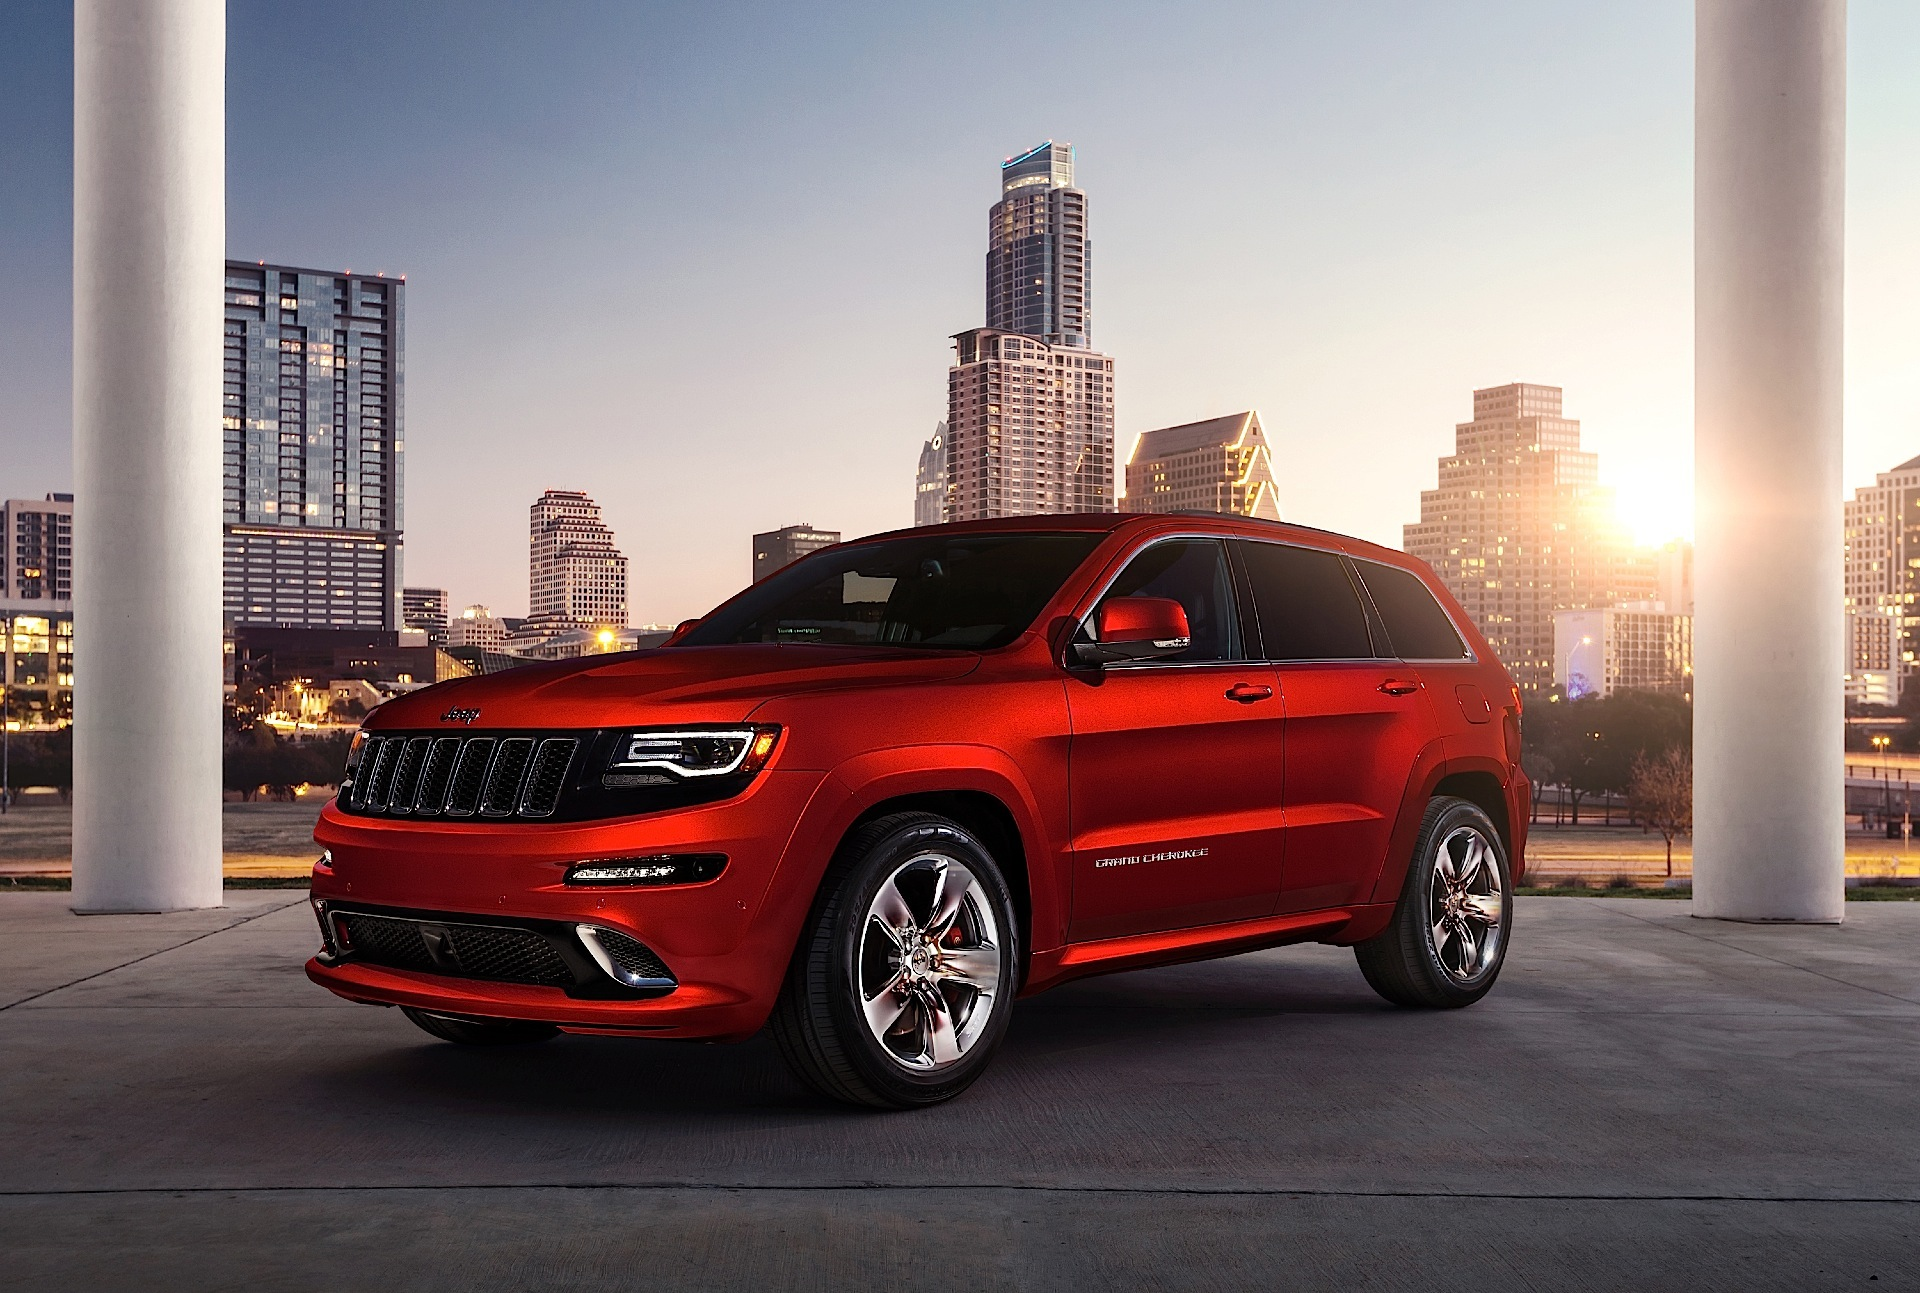 jeep grand cherokee srt specs photos 2013 2014 2015 2016 2017 2018 autoevolution. Black Bedroom Furniture Sets. Home Design Ideas